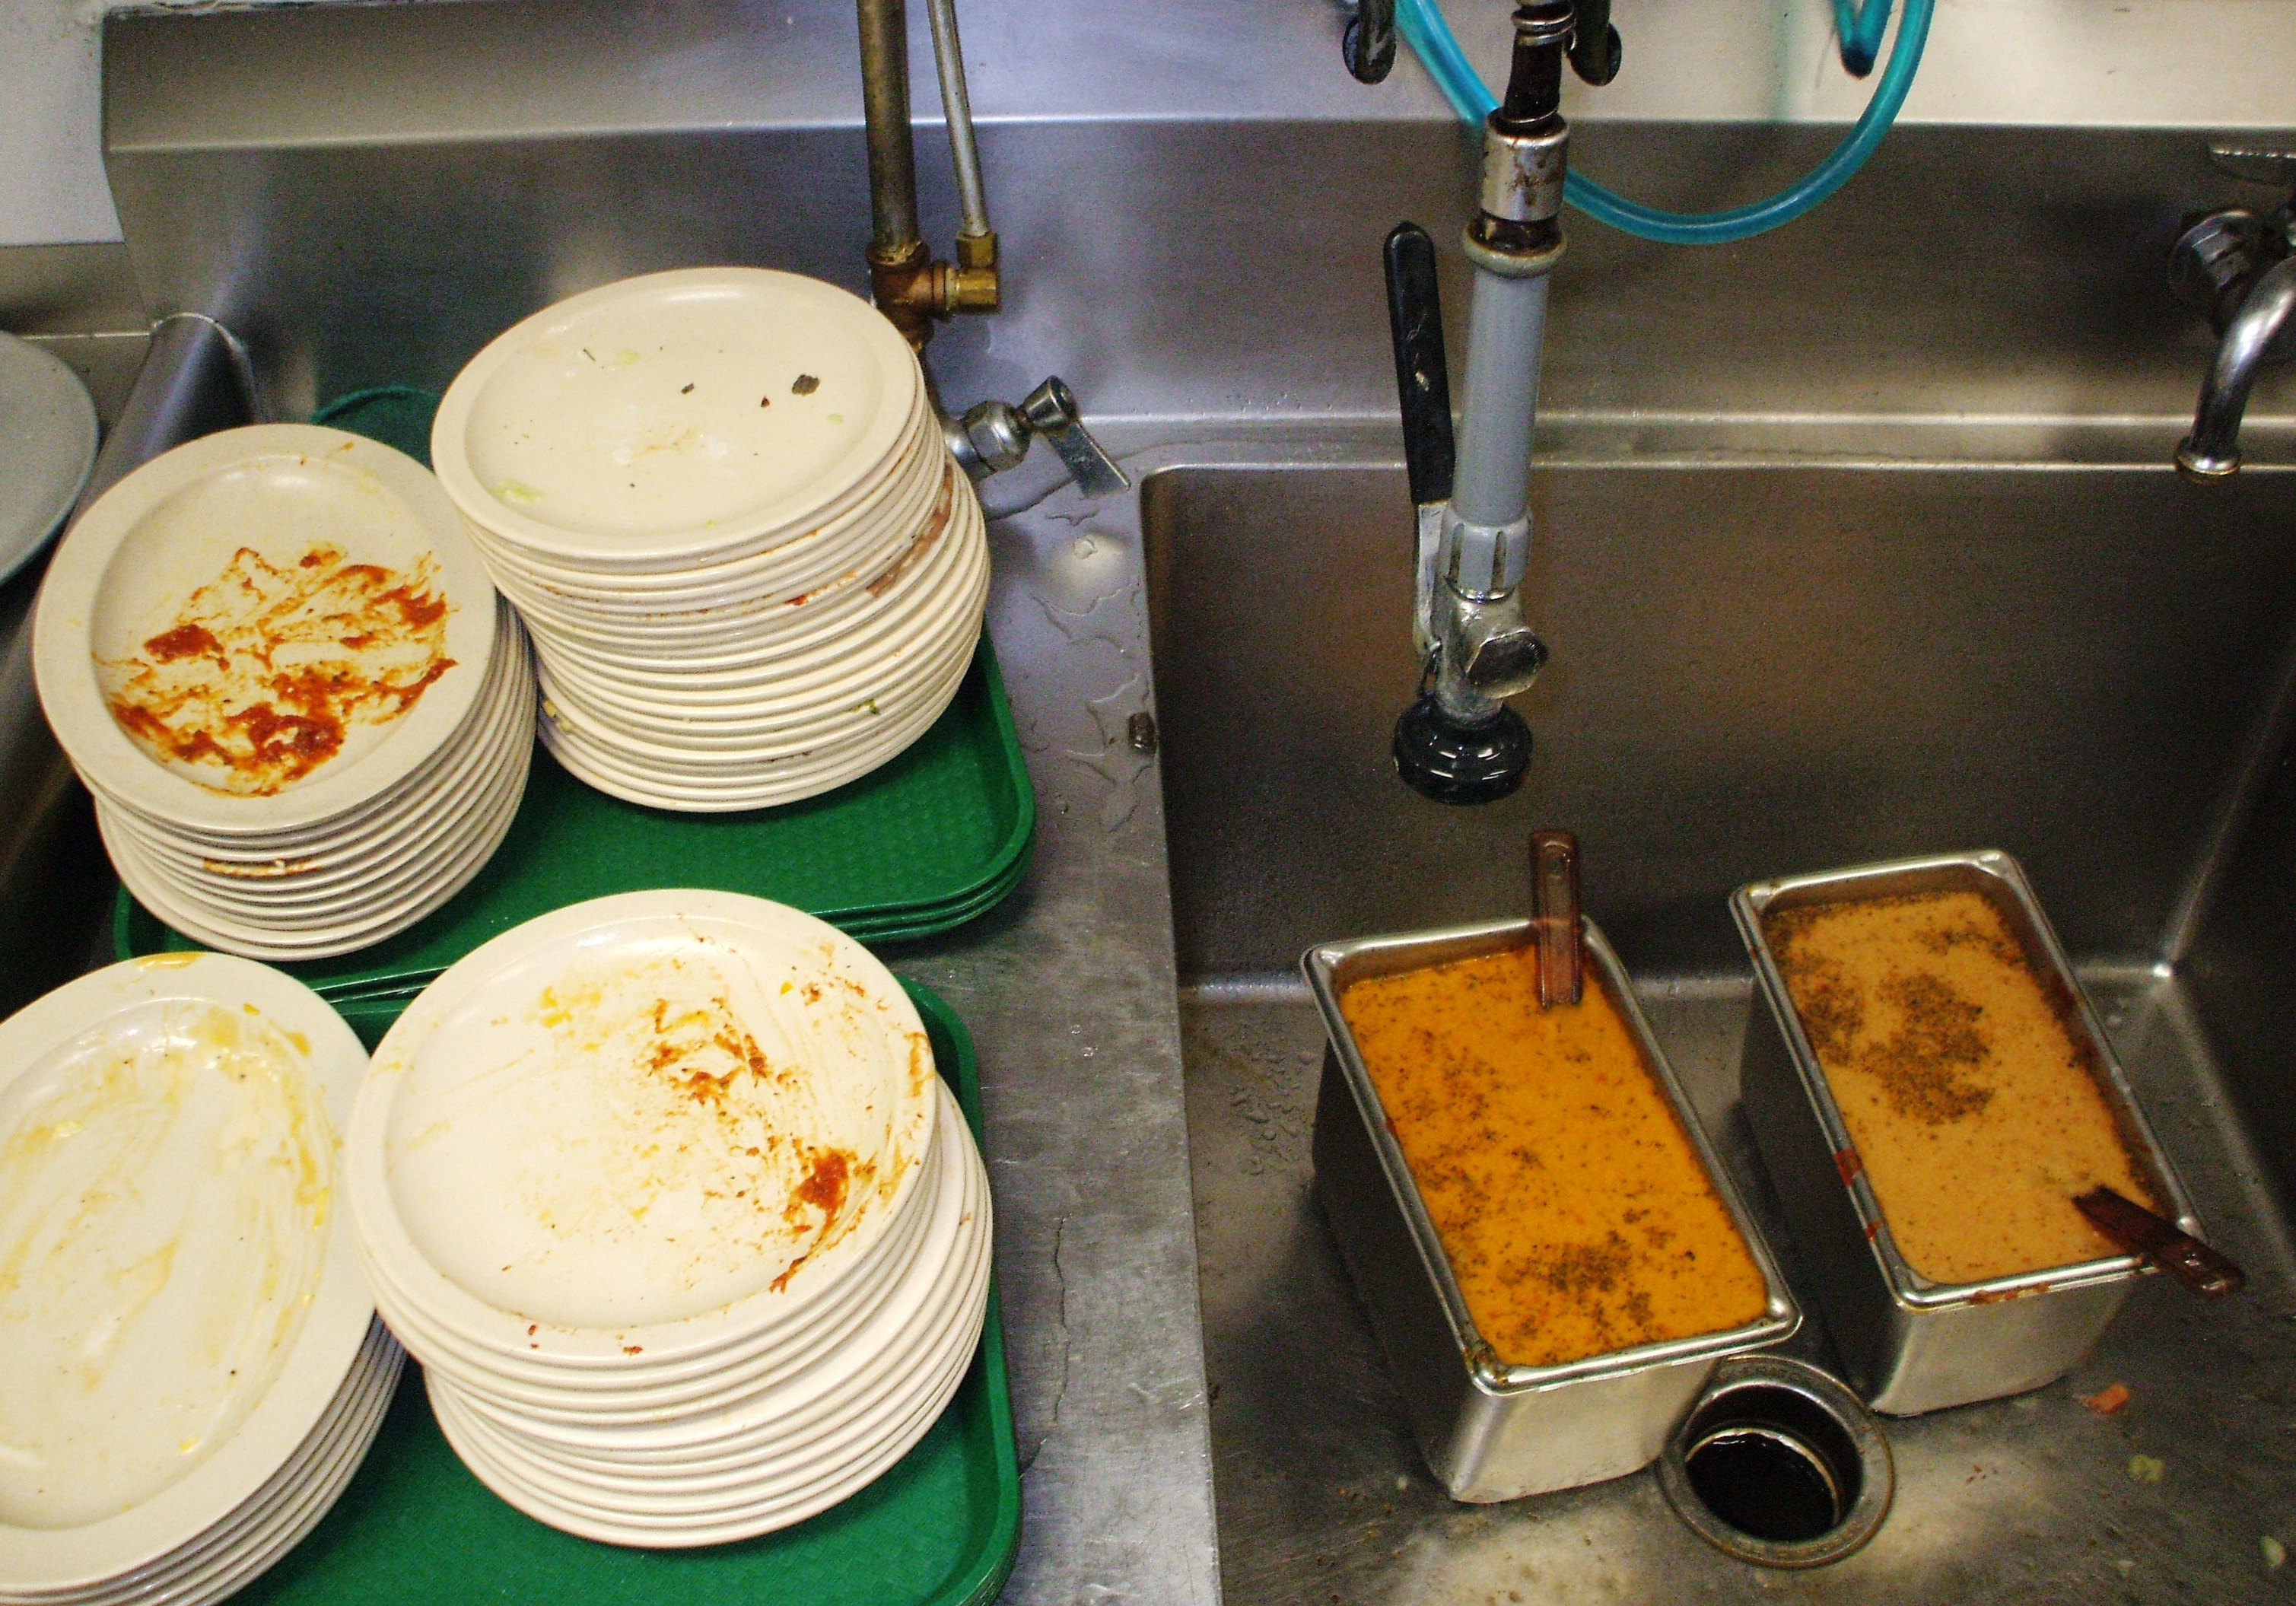 Fat, oil, and grease, and food solids on plates during clean-up in a commercial kitchen.